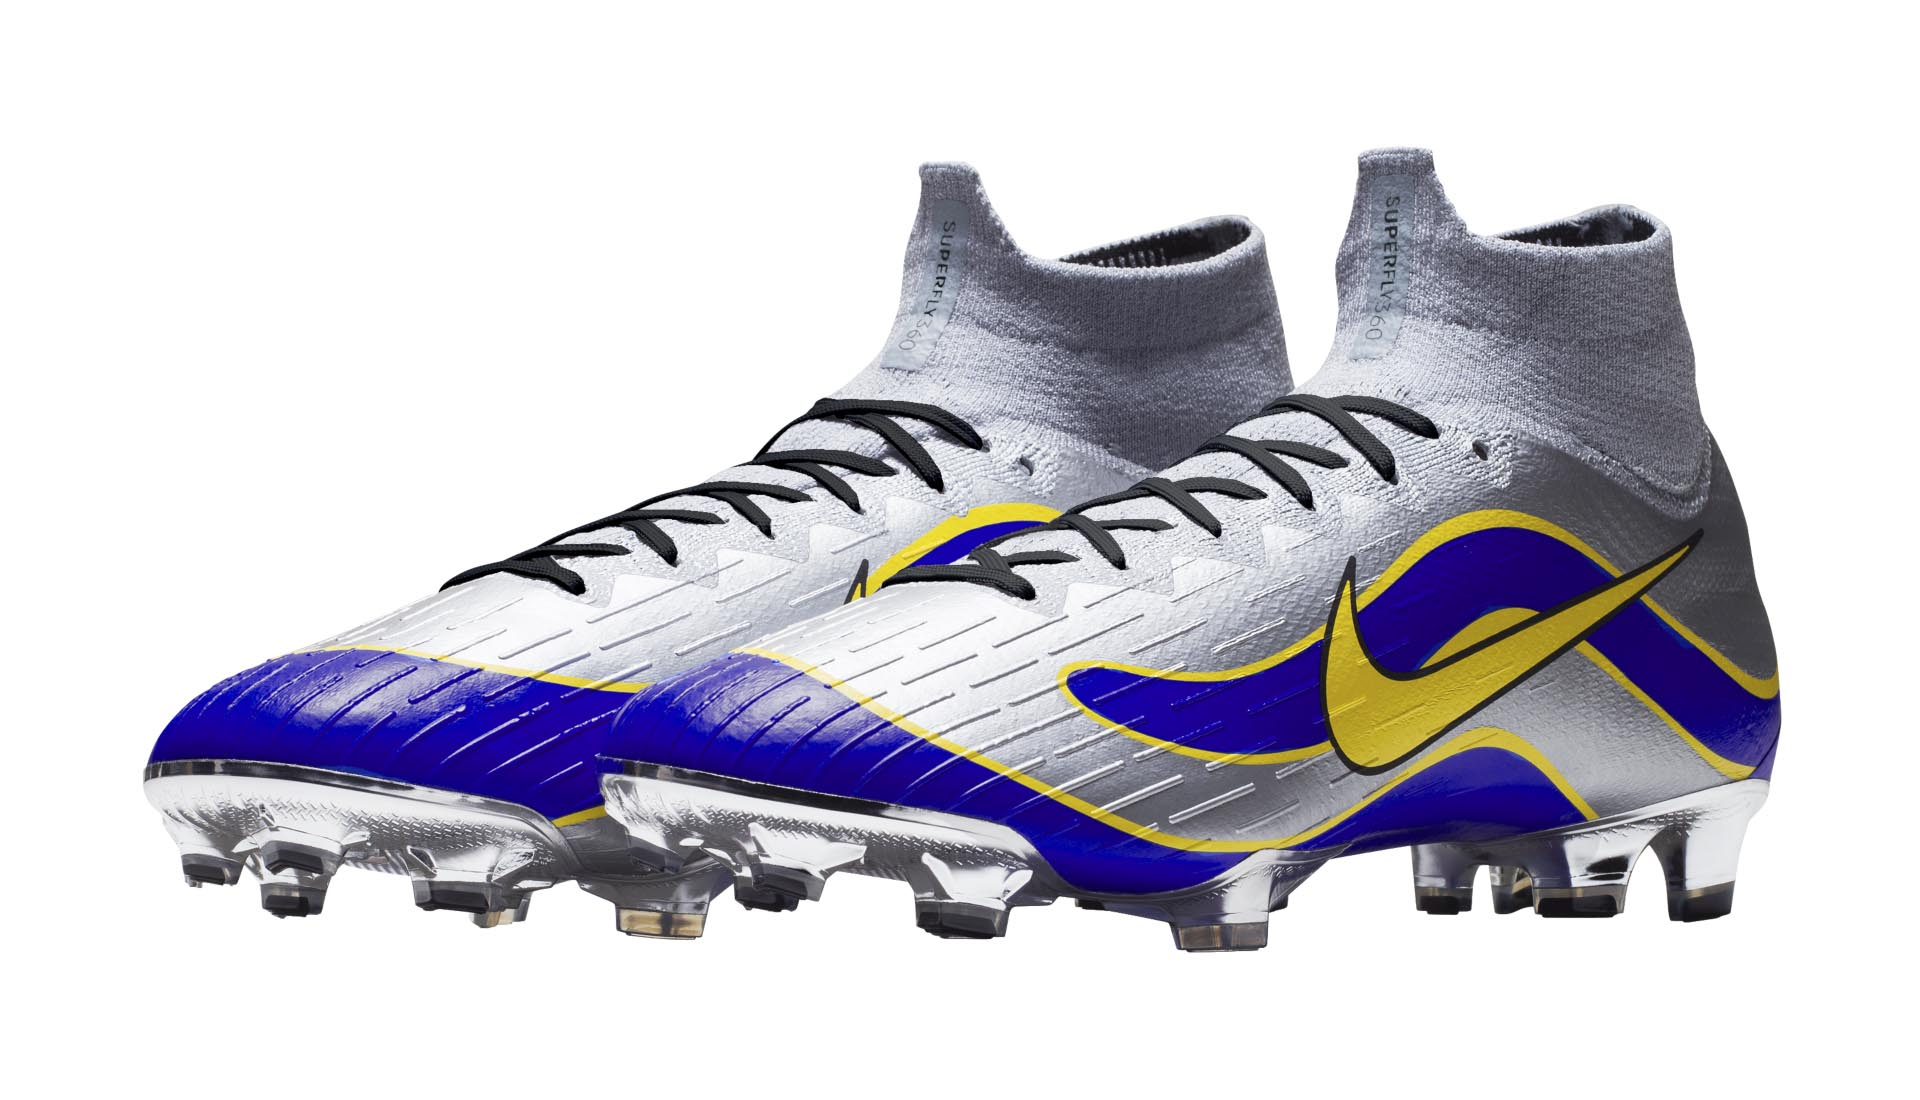 7547eac7a1a Nike Launch The Mercurial Heritage Collection - SoccerBible